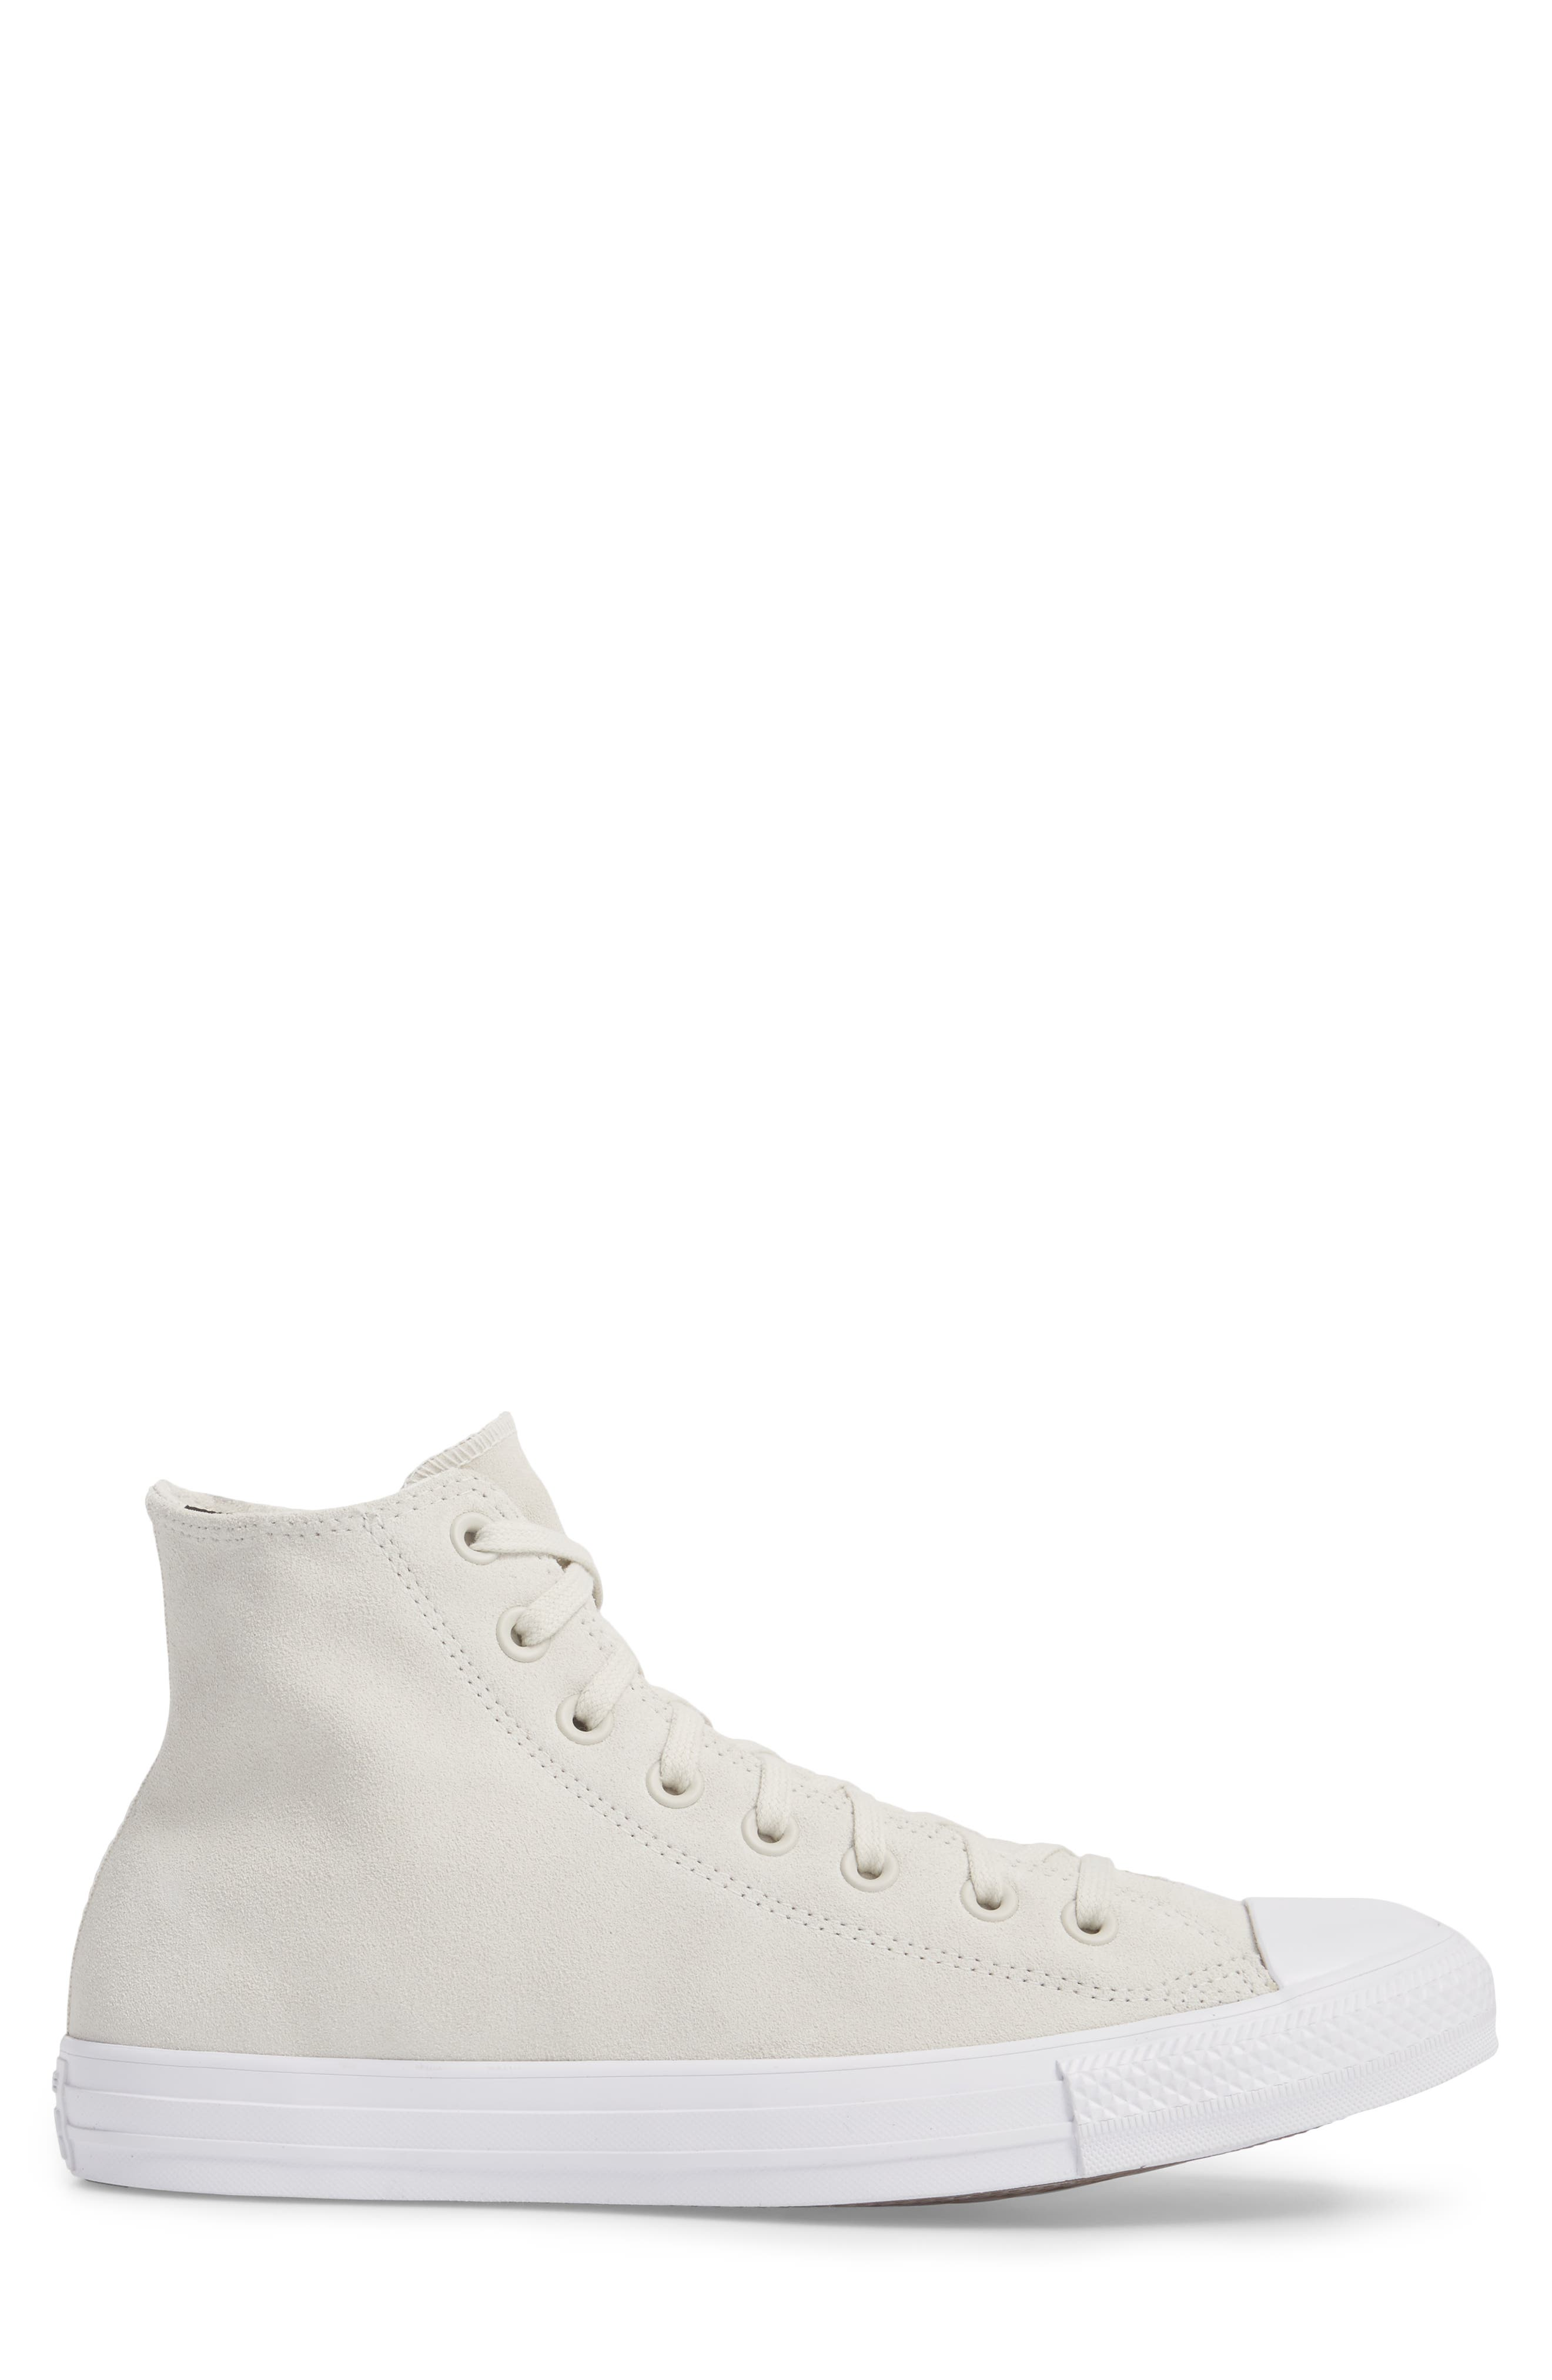 Chuck Taylor<sup>®</sup> All Star<sup>®</sup> Plush Hi Sneaker,                             Alternate thumbnail 3, color,                             250